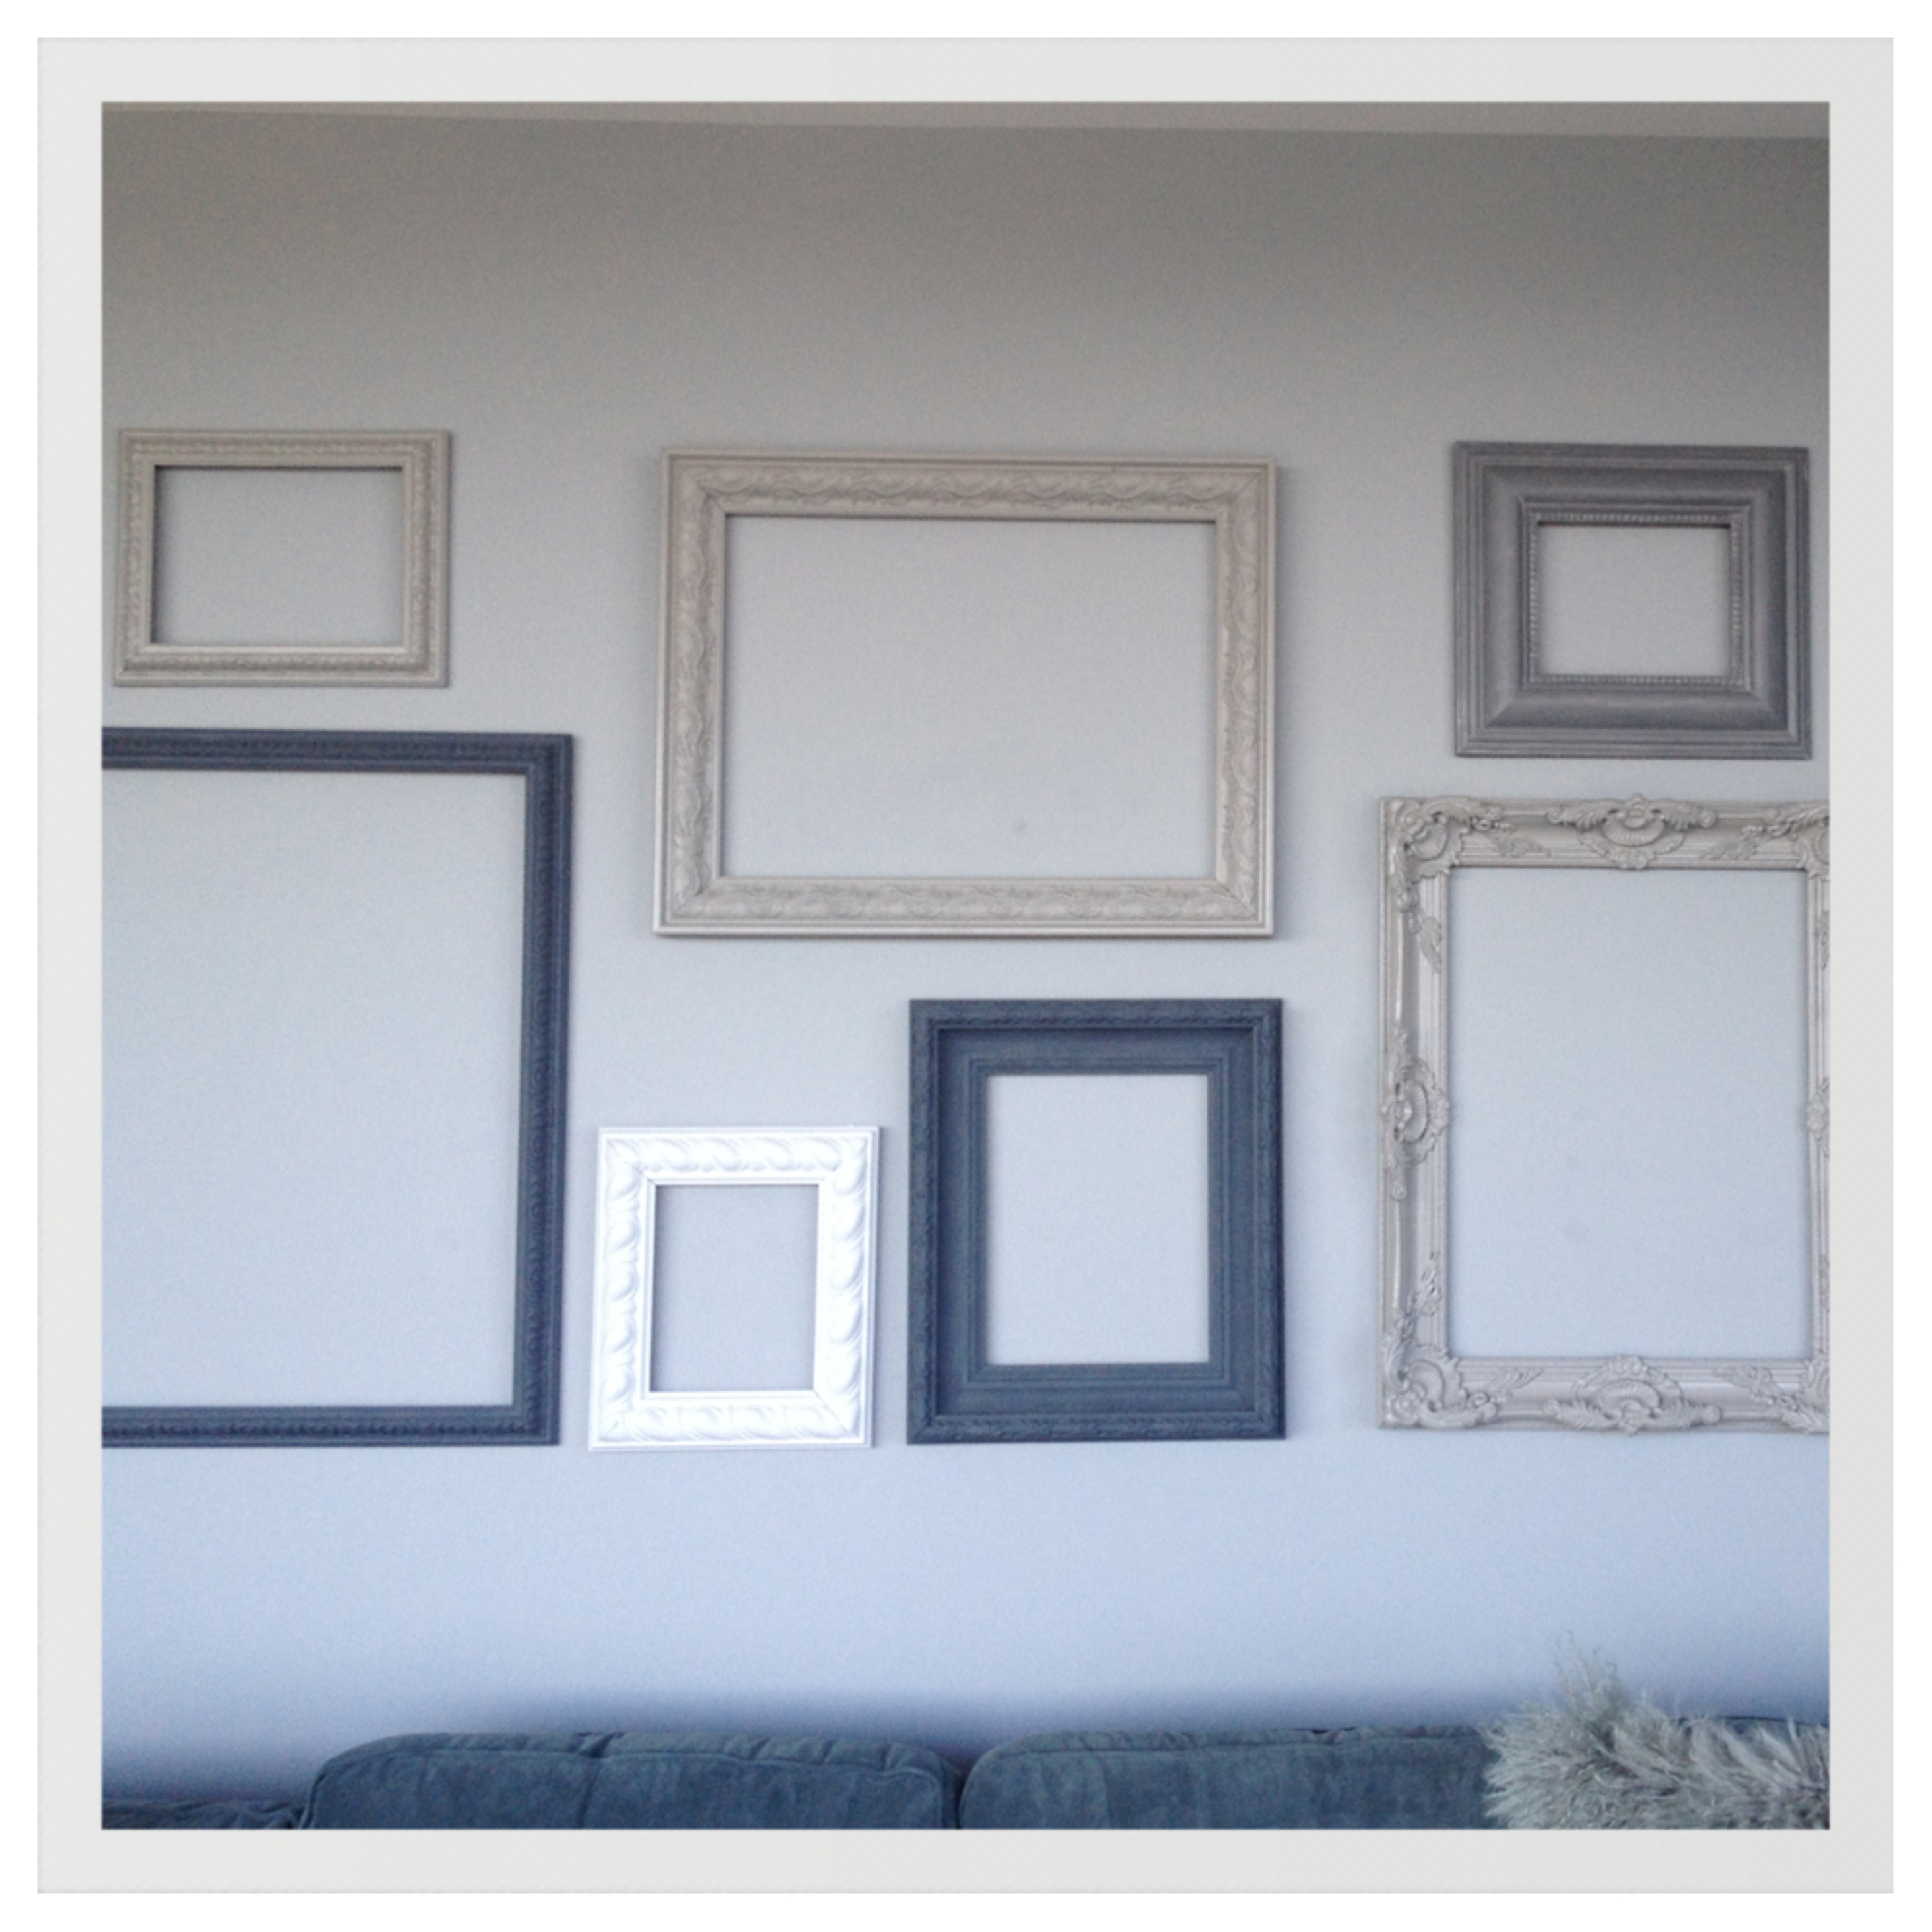 Gallery of empty frames pictures to pin on pinterest for What to do with empty picture frames